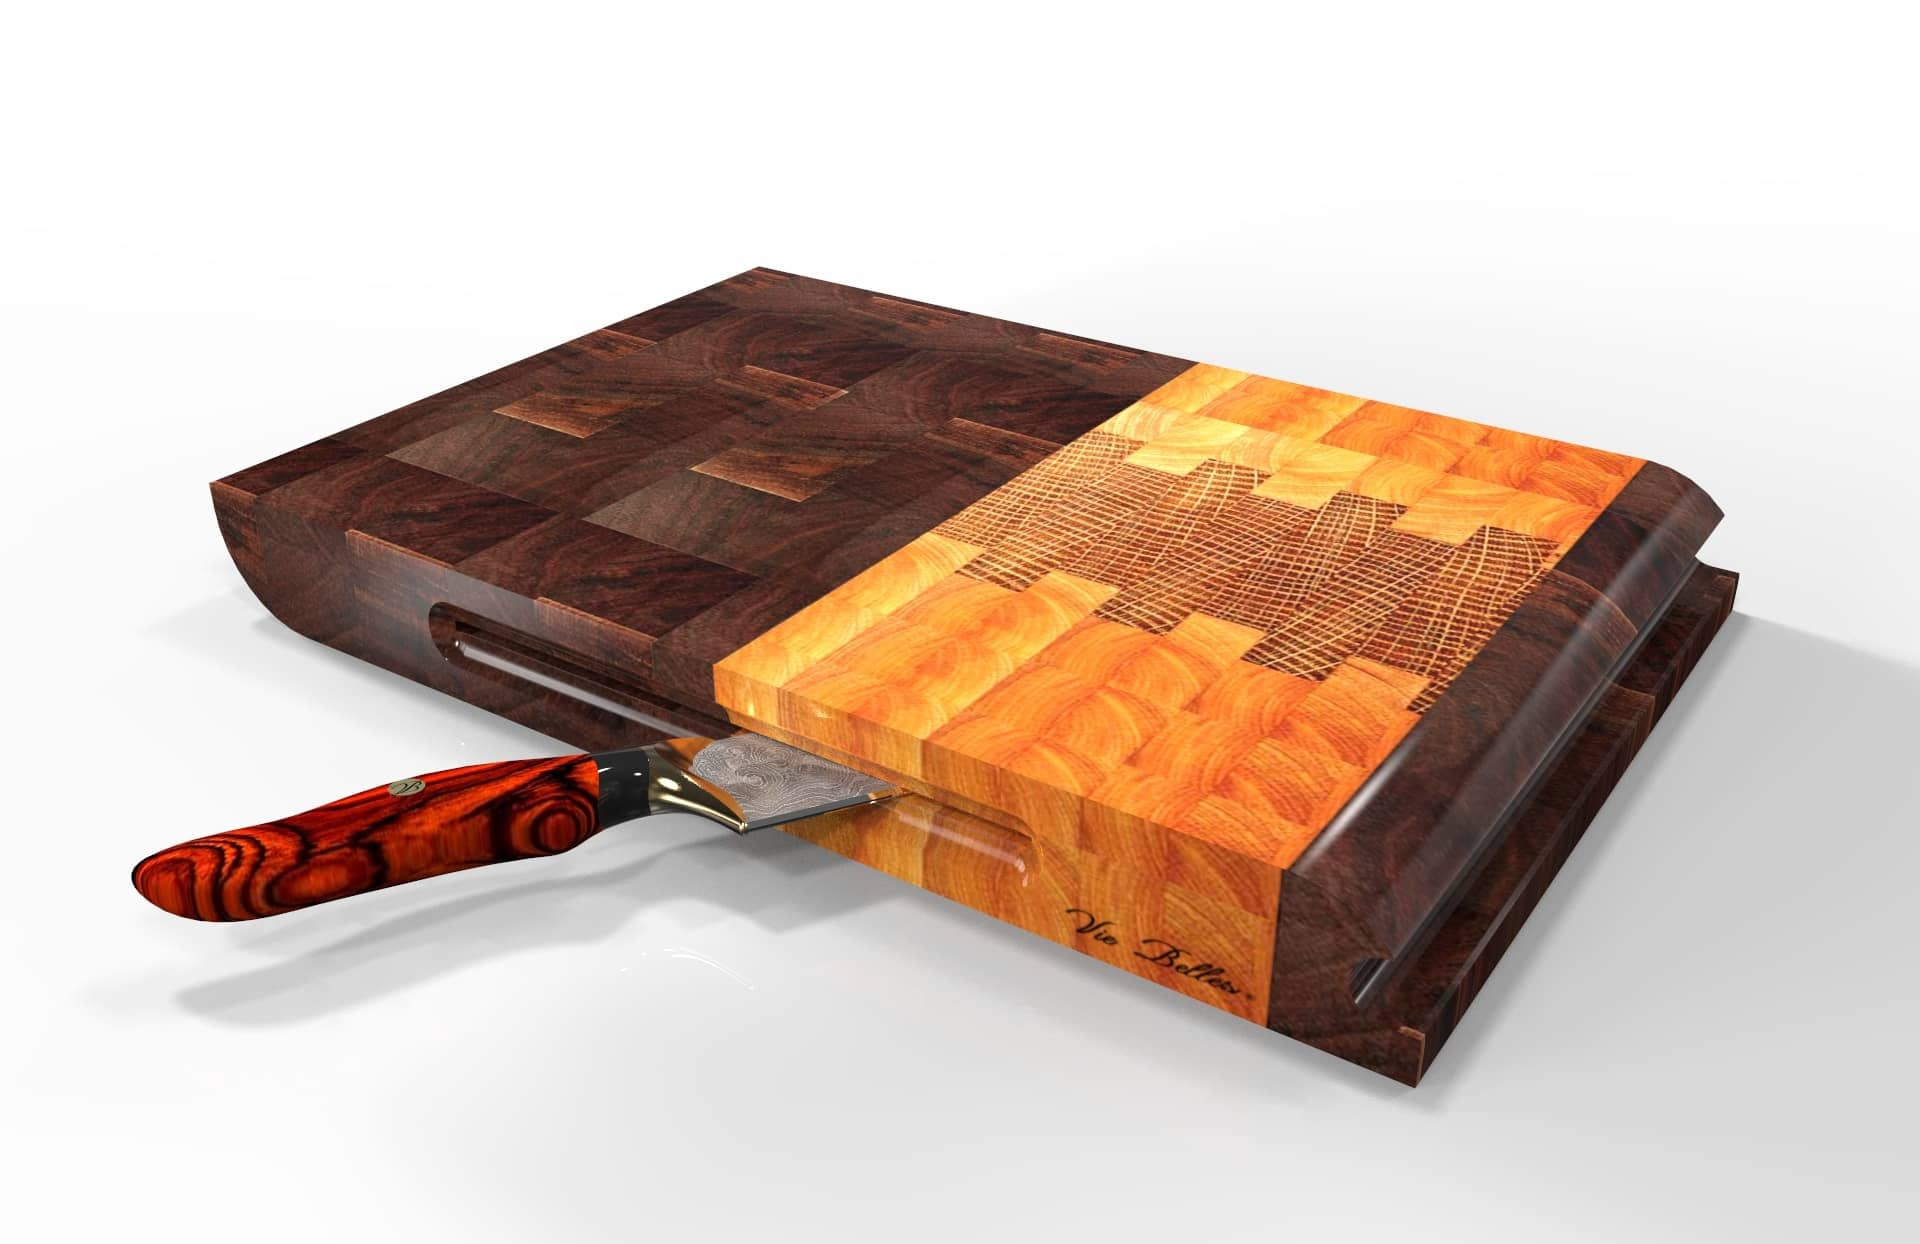 Everyday Cutting Board With Knife By Vie Belles